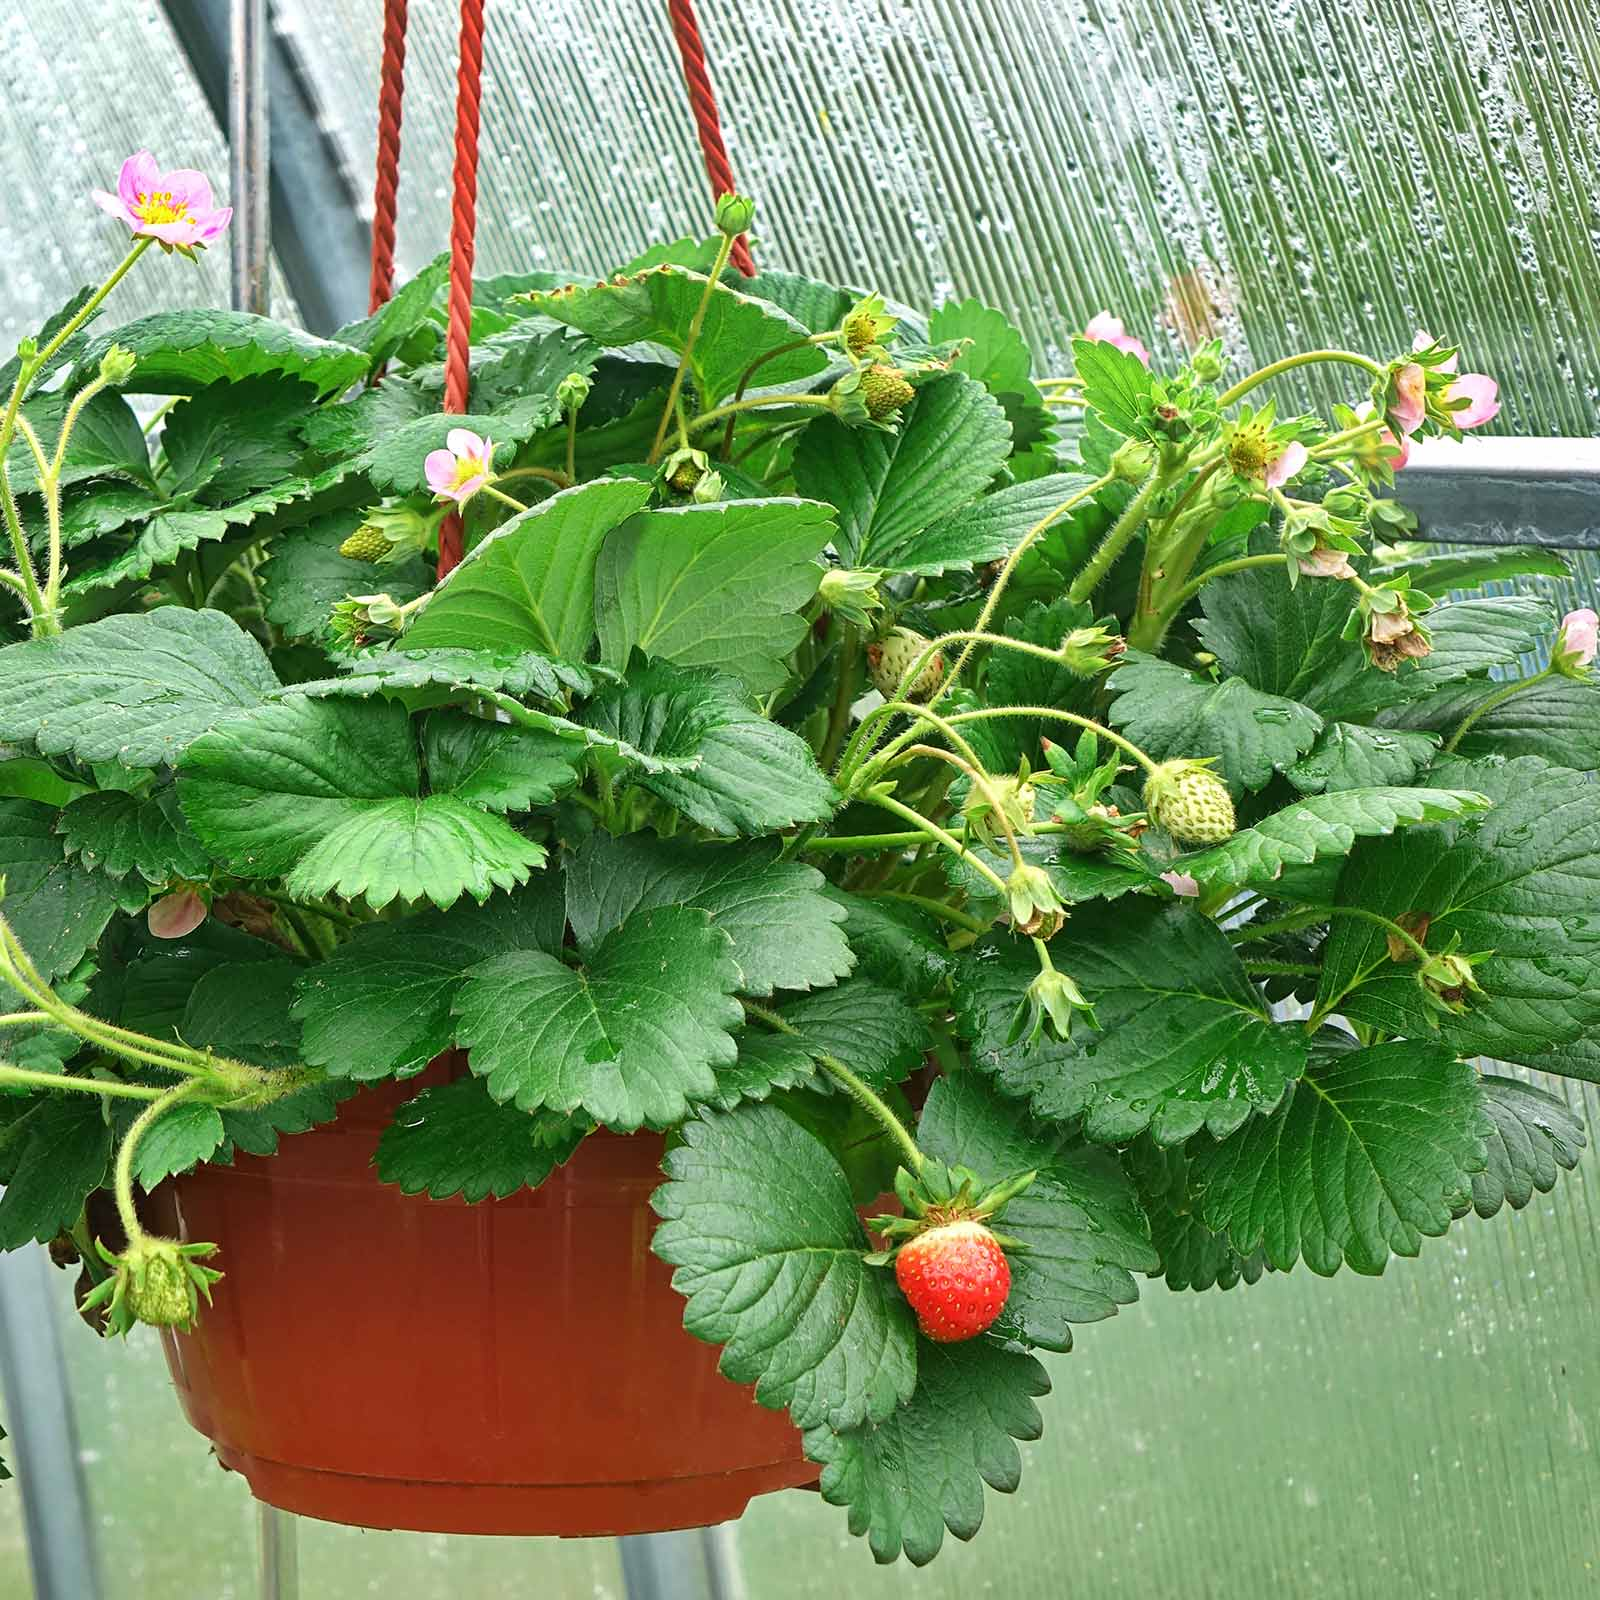 Strawberry Fruit Garden Seeds - Berries Galore Hybrid Pink - 100 Seeds - Non-GMO Fruit Gardening